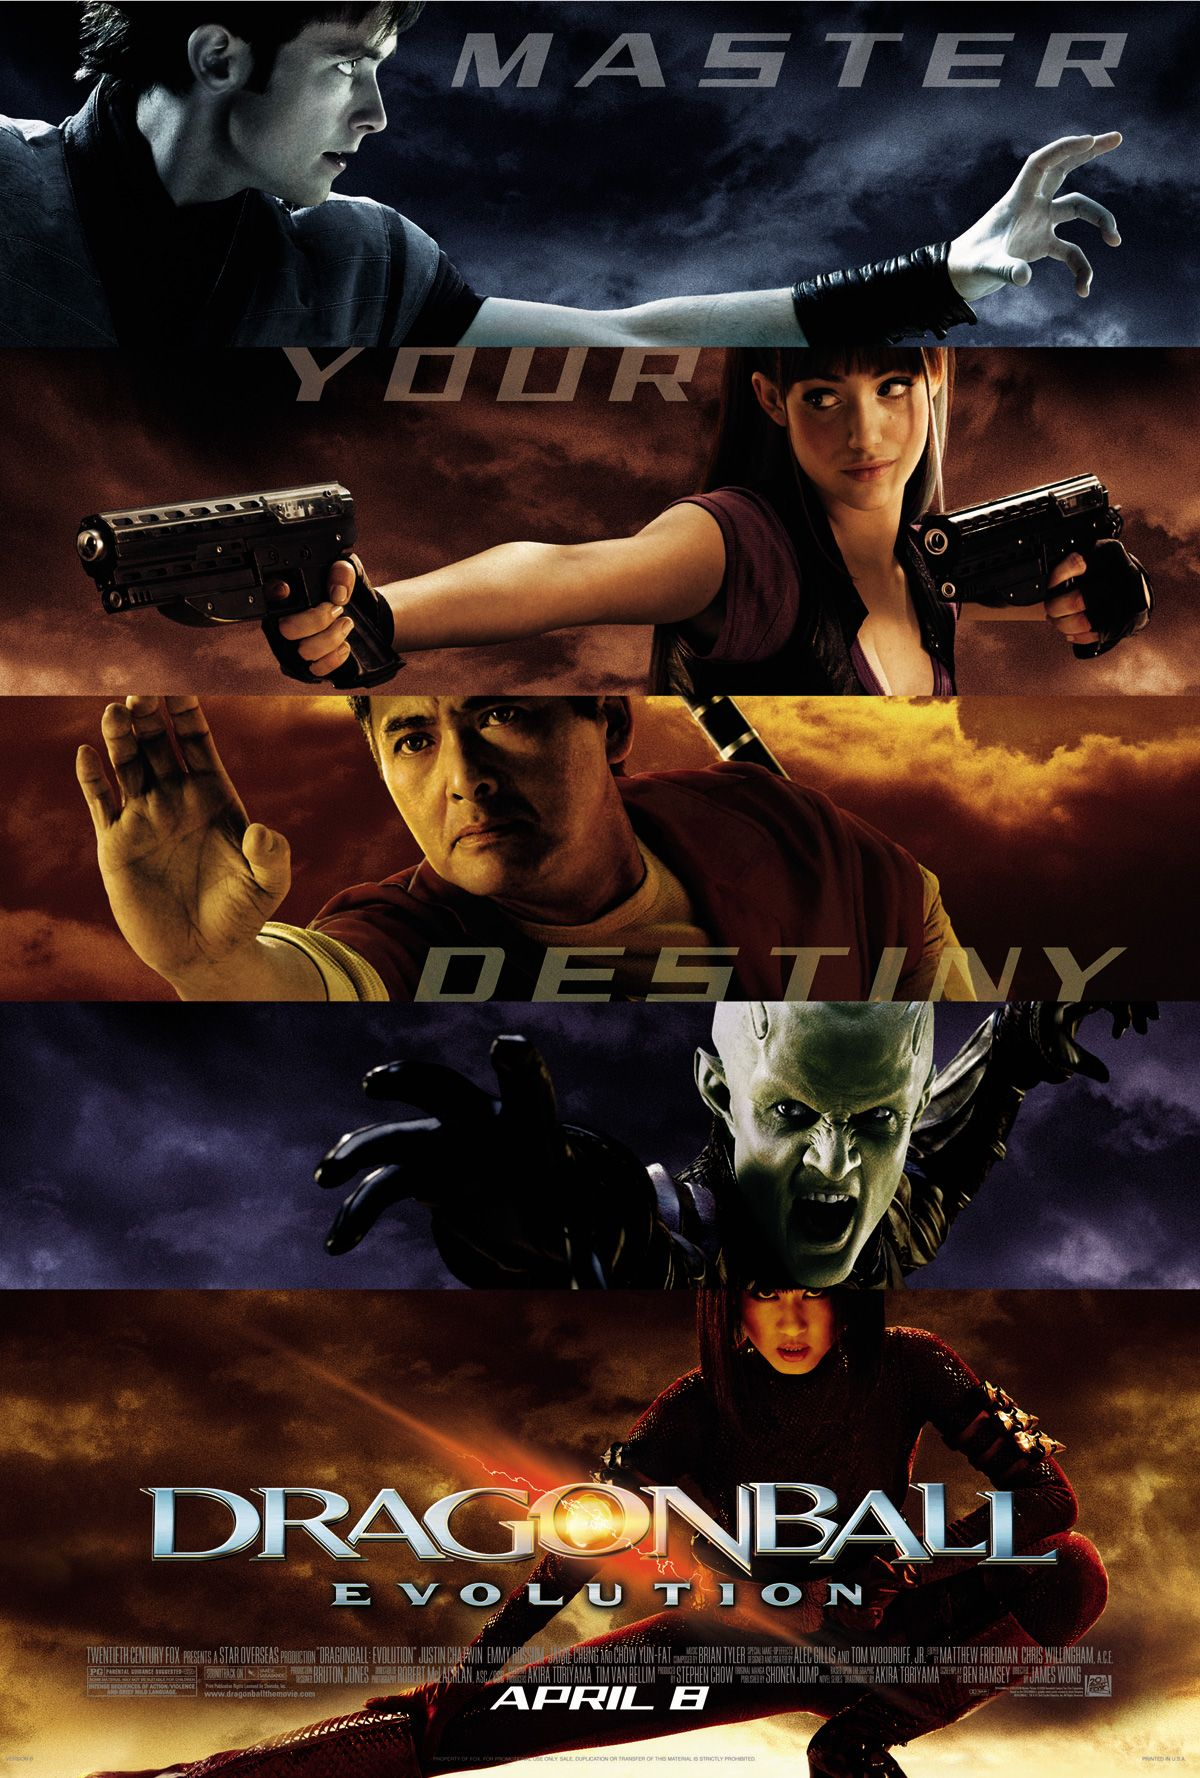 Dragonball Evolution Is A 2009 Adventure Fiction Film Directed By